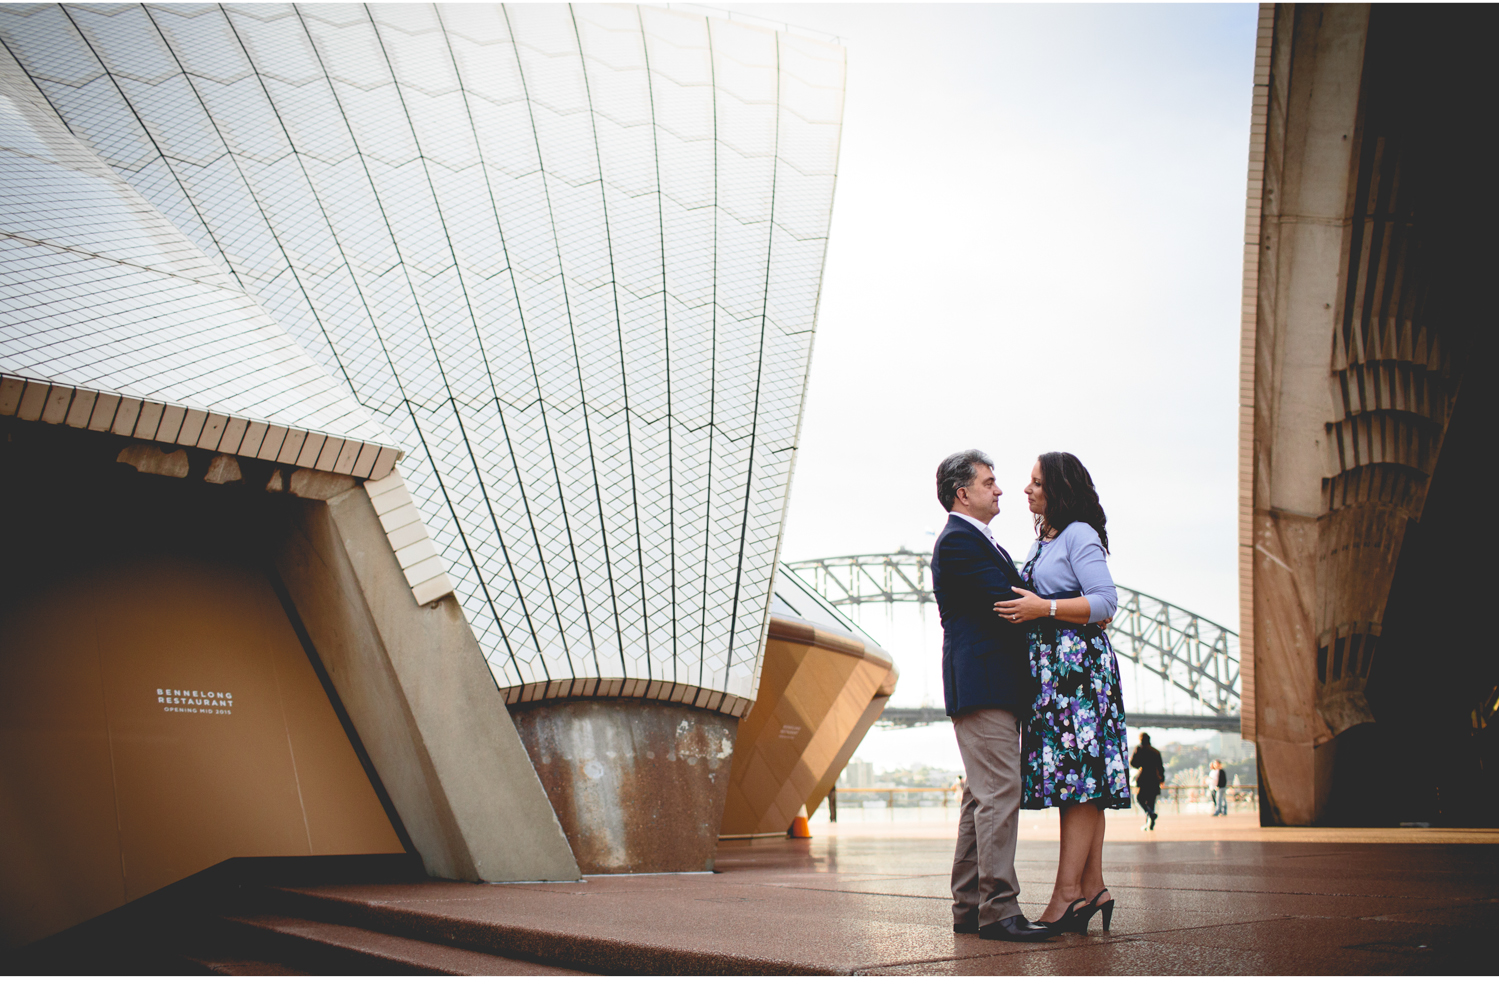 sydney_opera_house_engagement.03.jpg